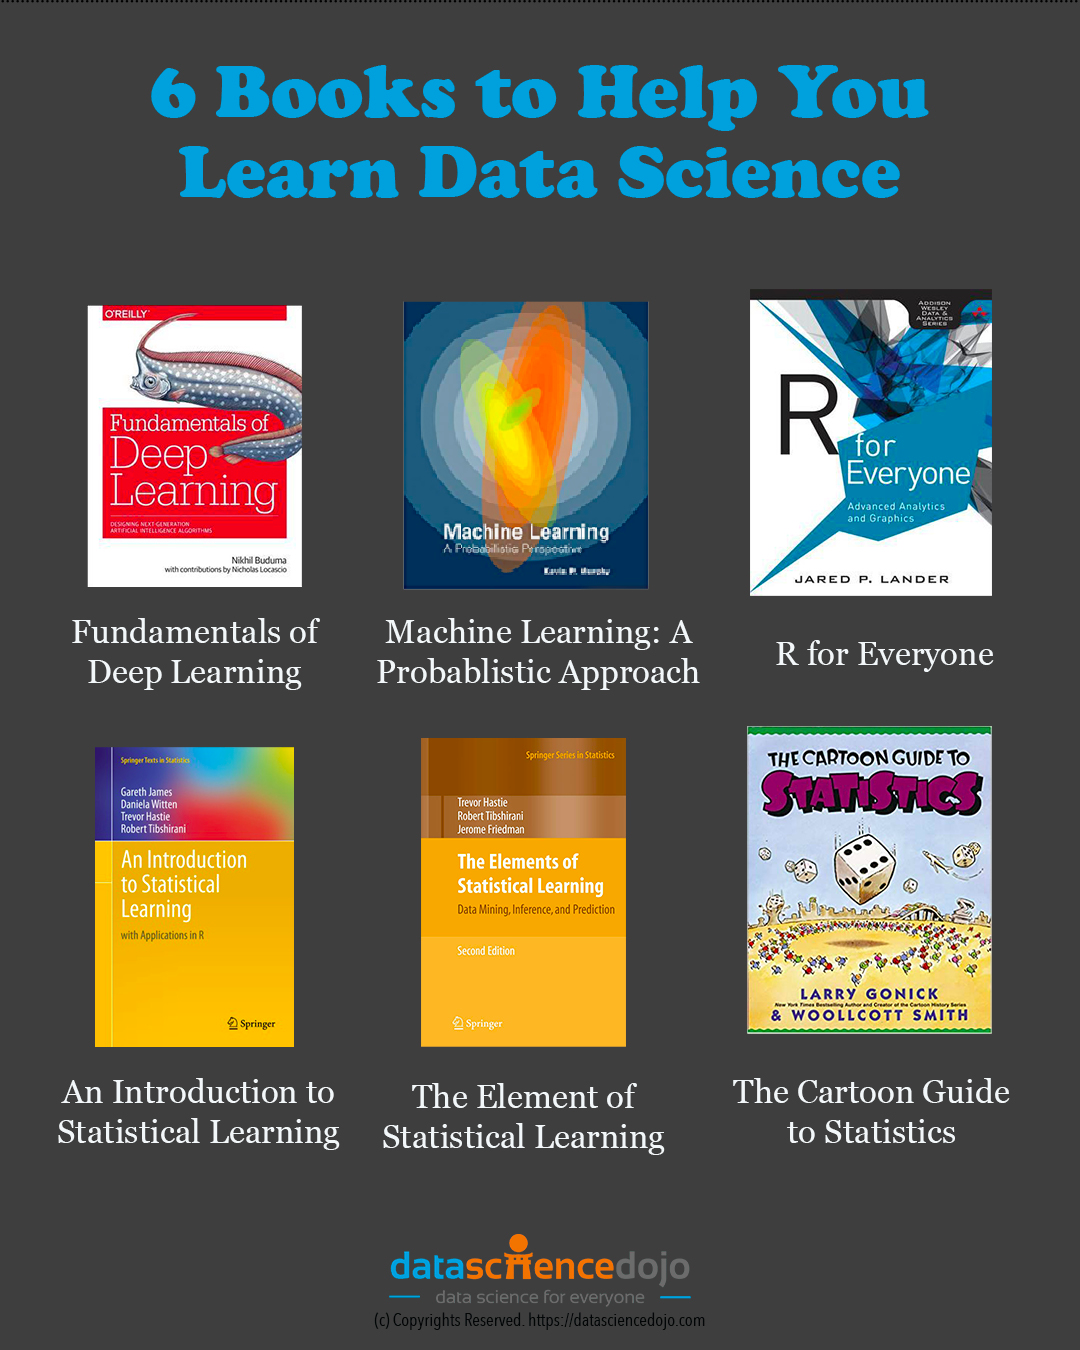 6 Books to help you learn Data Science